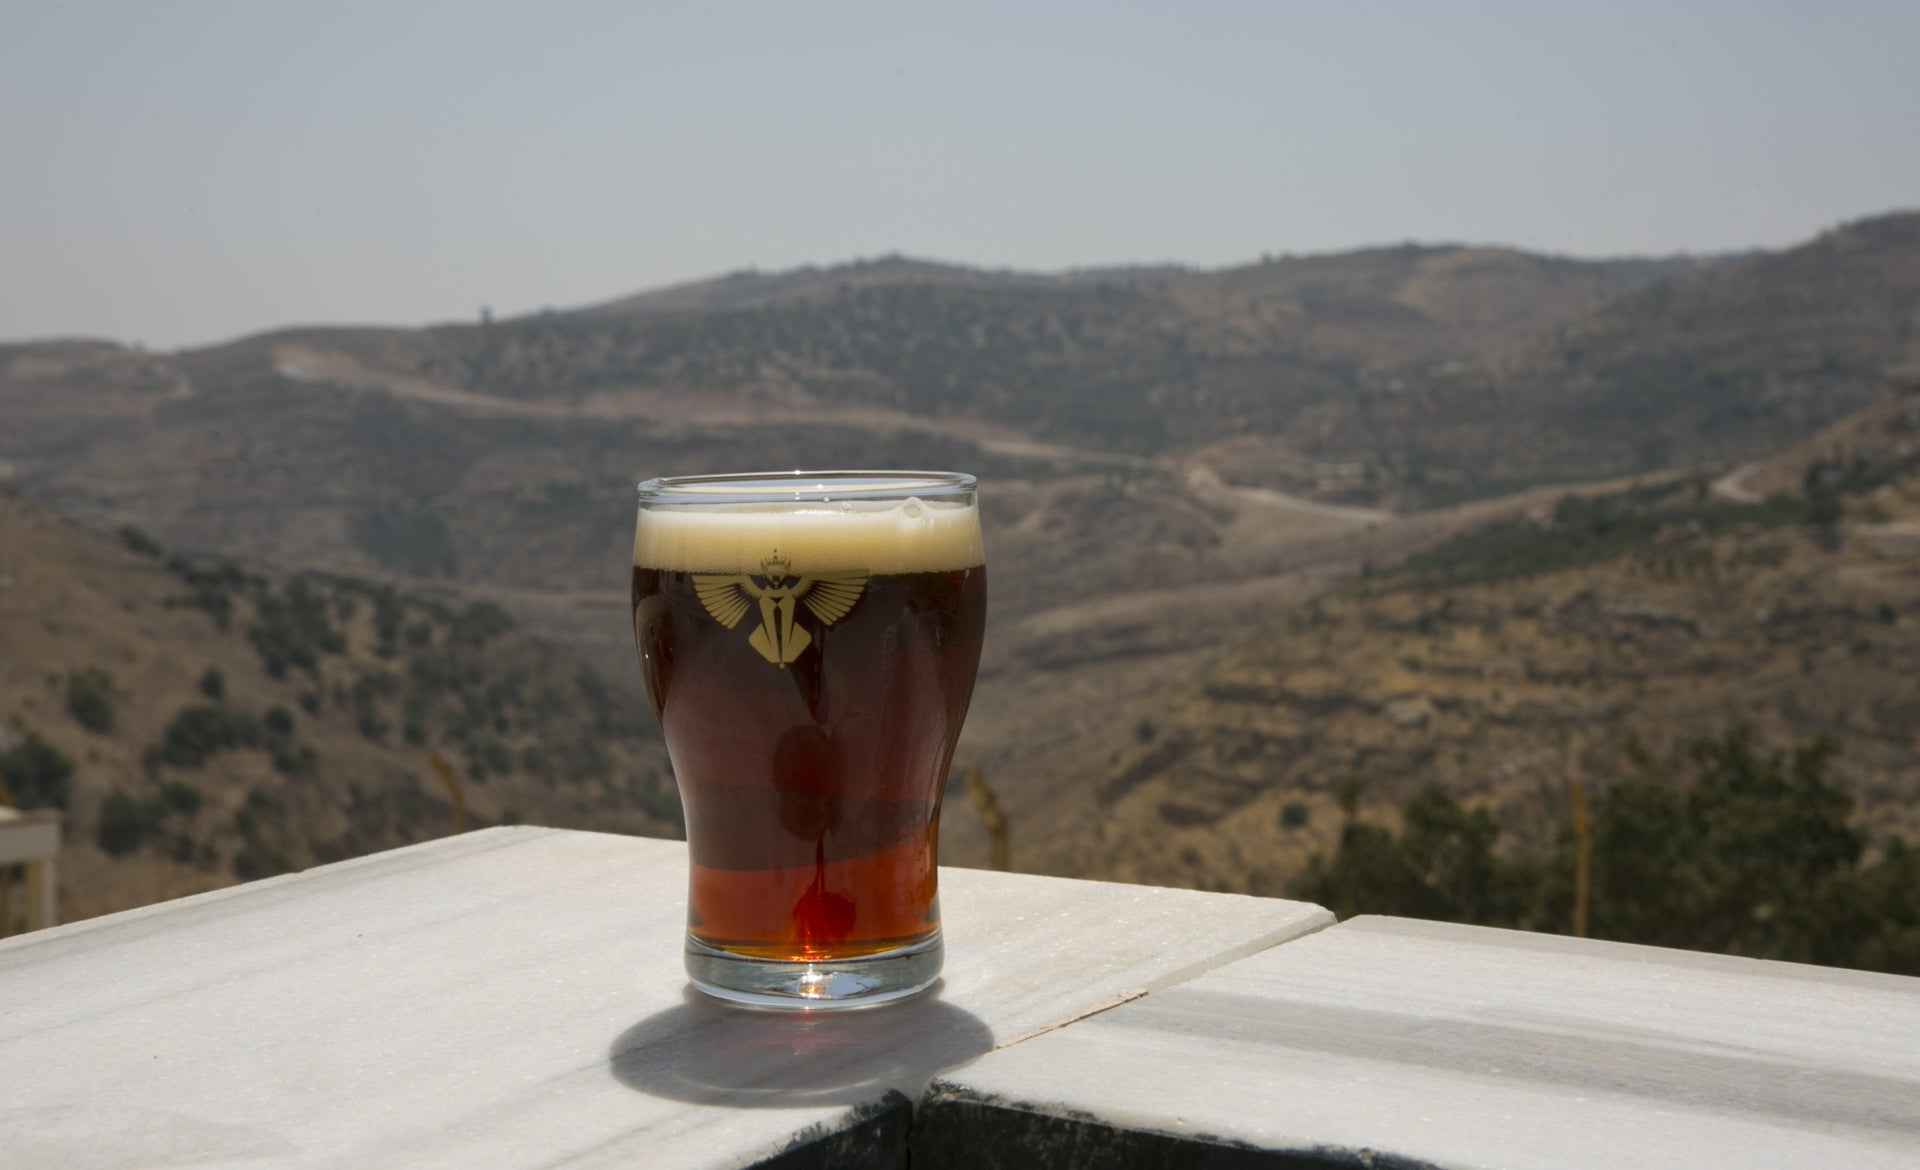 A Carakale beer with Jordanian hills in the background.